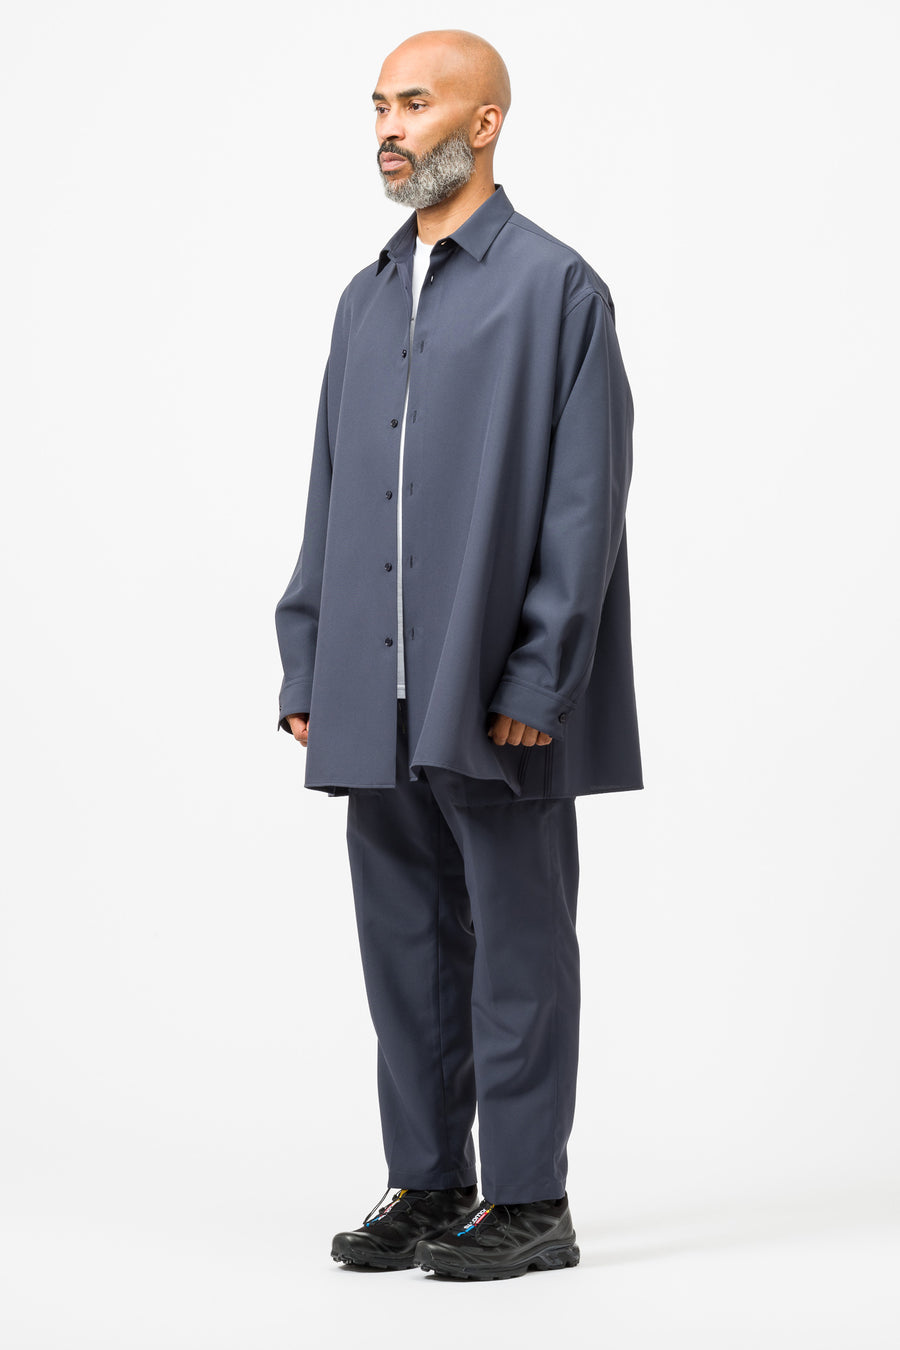 OAMC Apology Button Down LS Shirt in Dark Grey - Notre